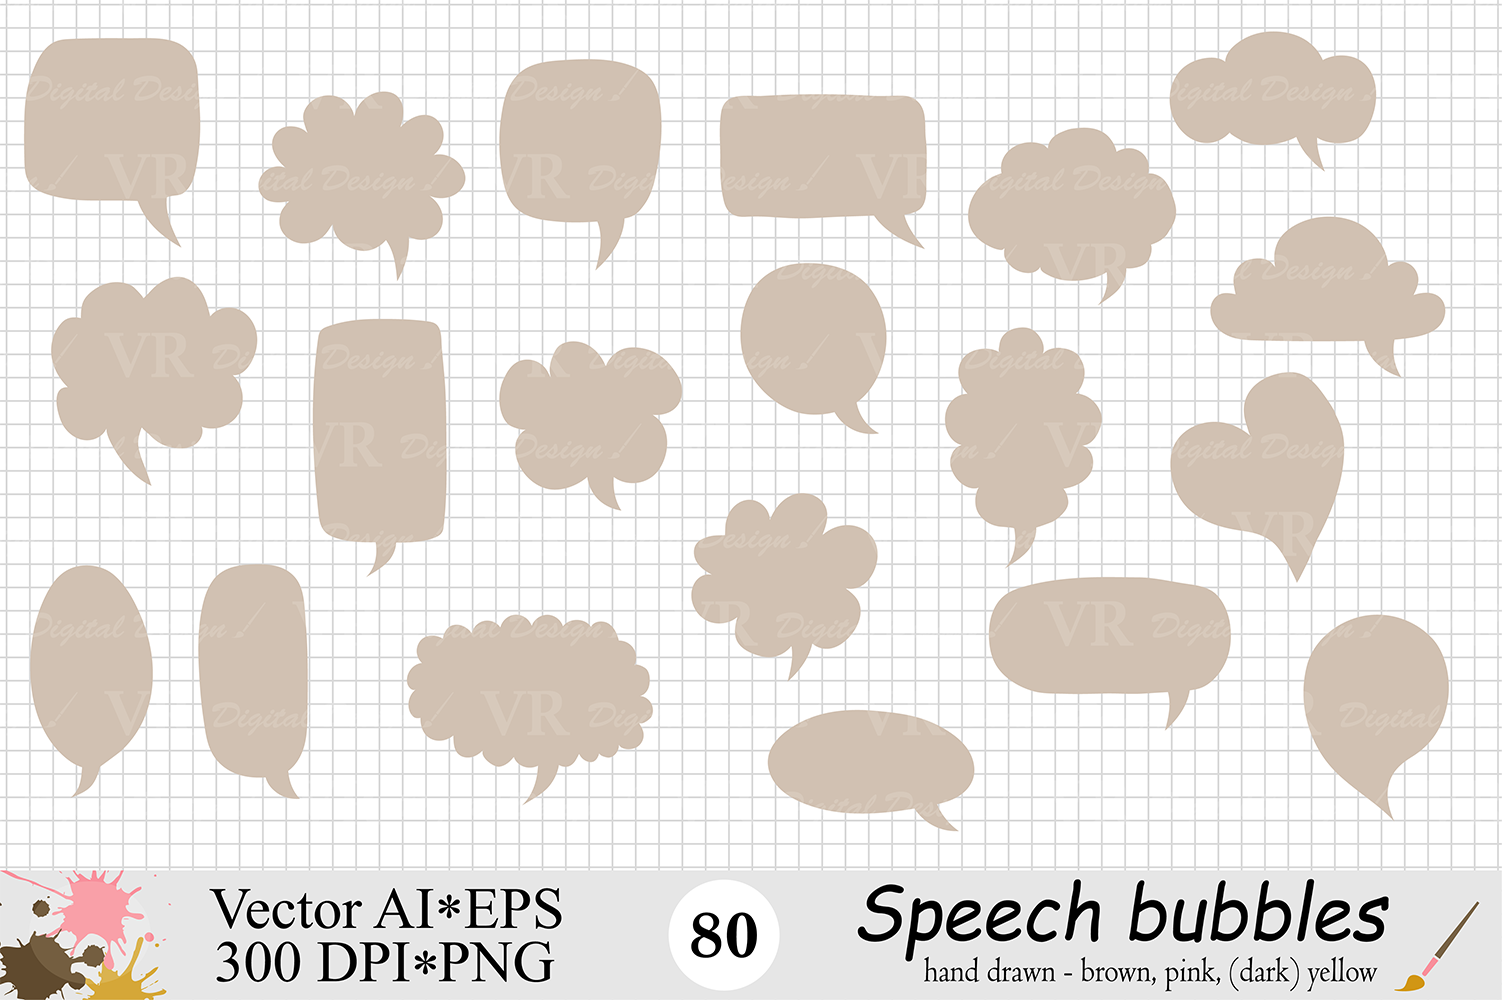 Speech Bubbles Clipart / Chat Bubbles / Hand drawn Text bubbles / Brown, Pink, Yellow - Vector example image 5